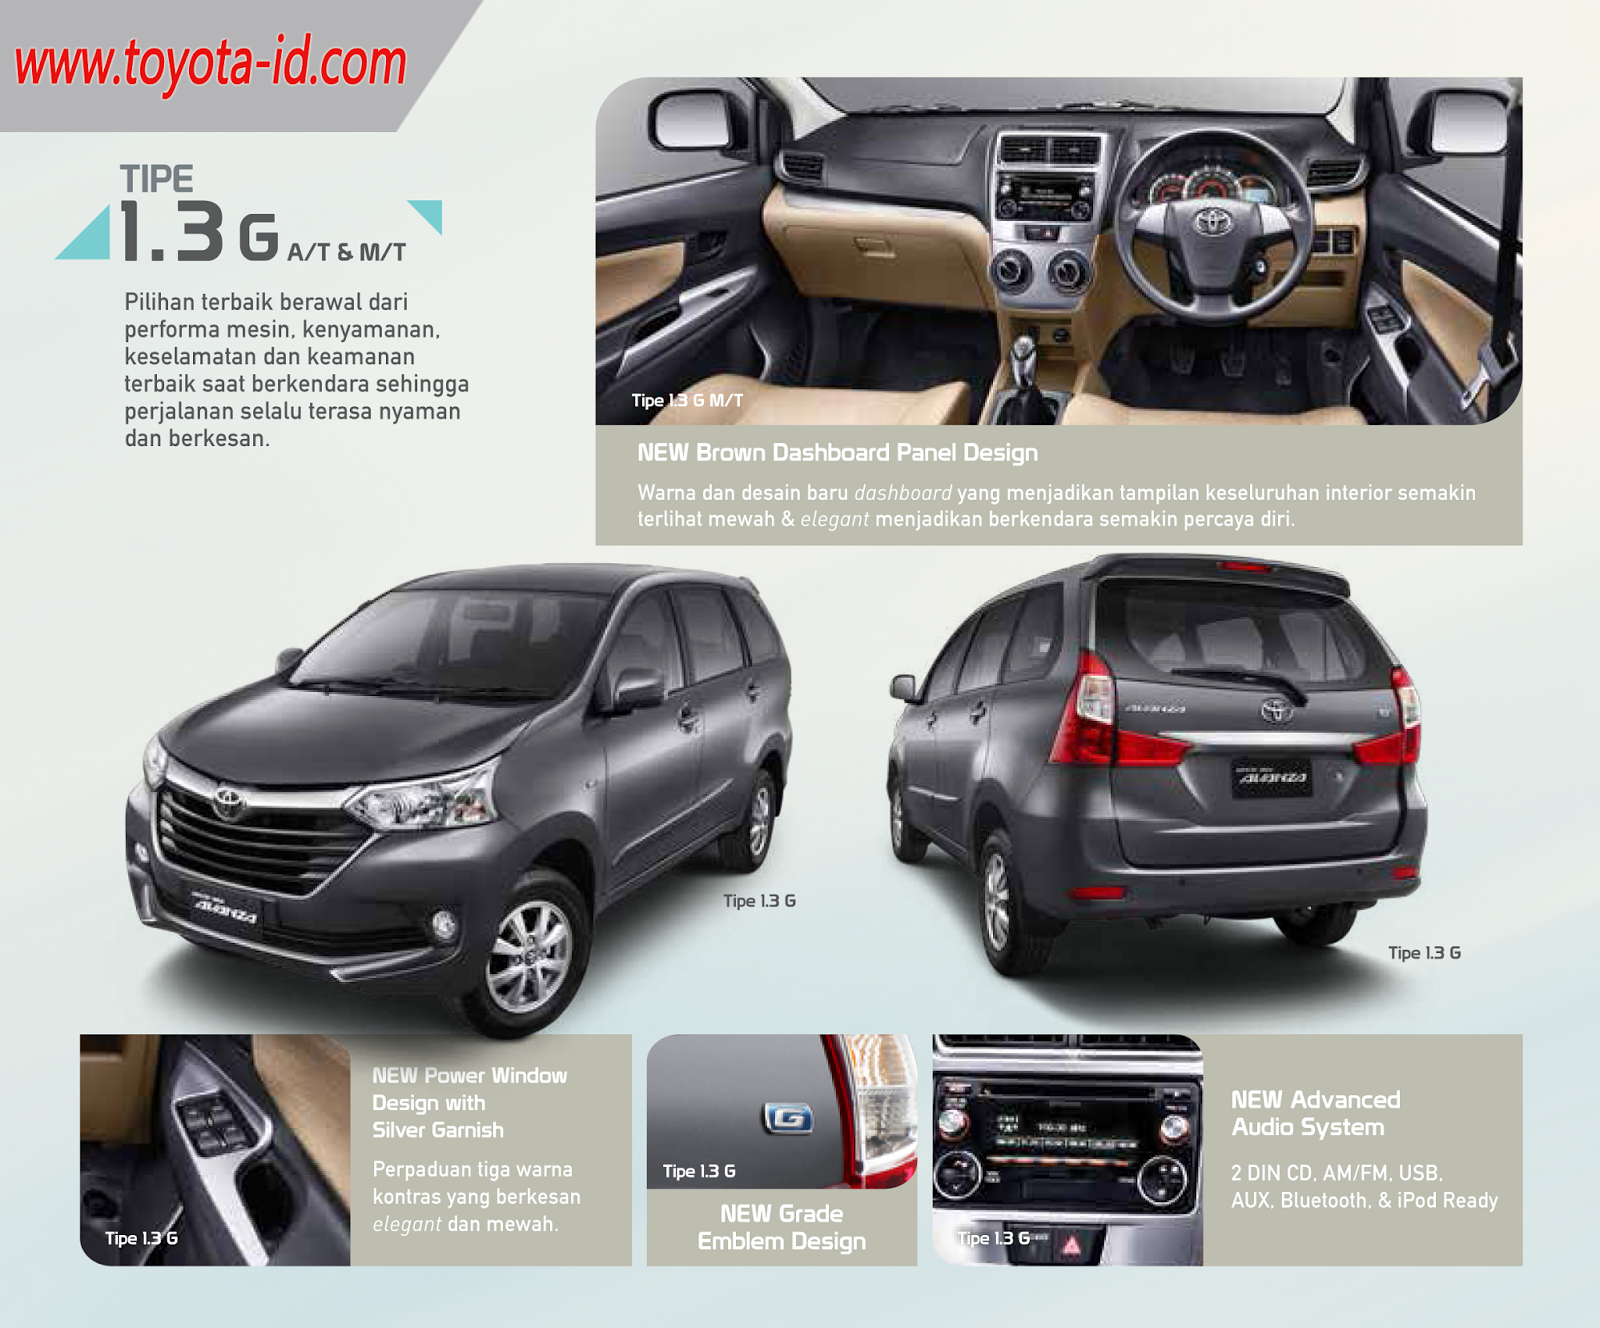 Warna Grand New Avanza Dark Brown Interior Veloz 1.5 Spesifikasi Toyota 2015 Astra Indonesia Tipe 1 5 G A T Dan M